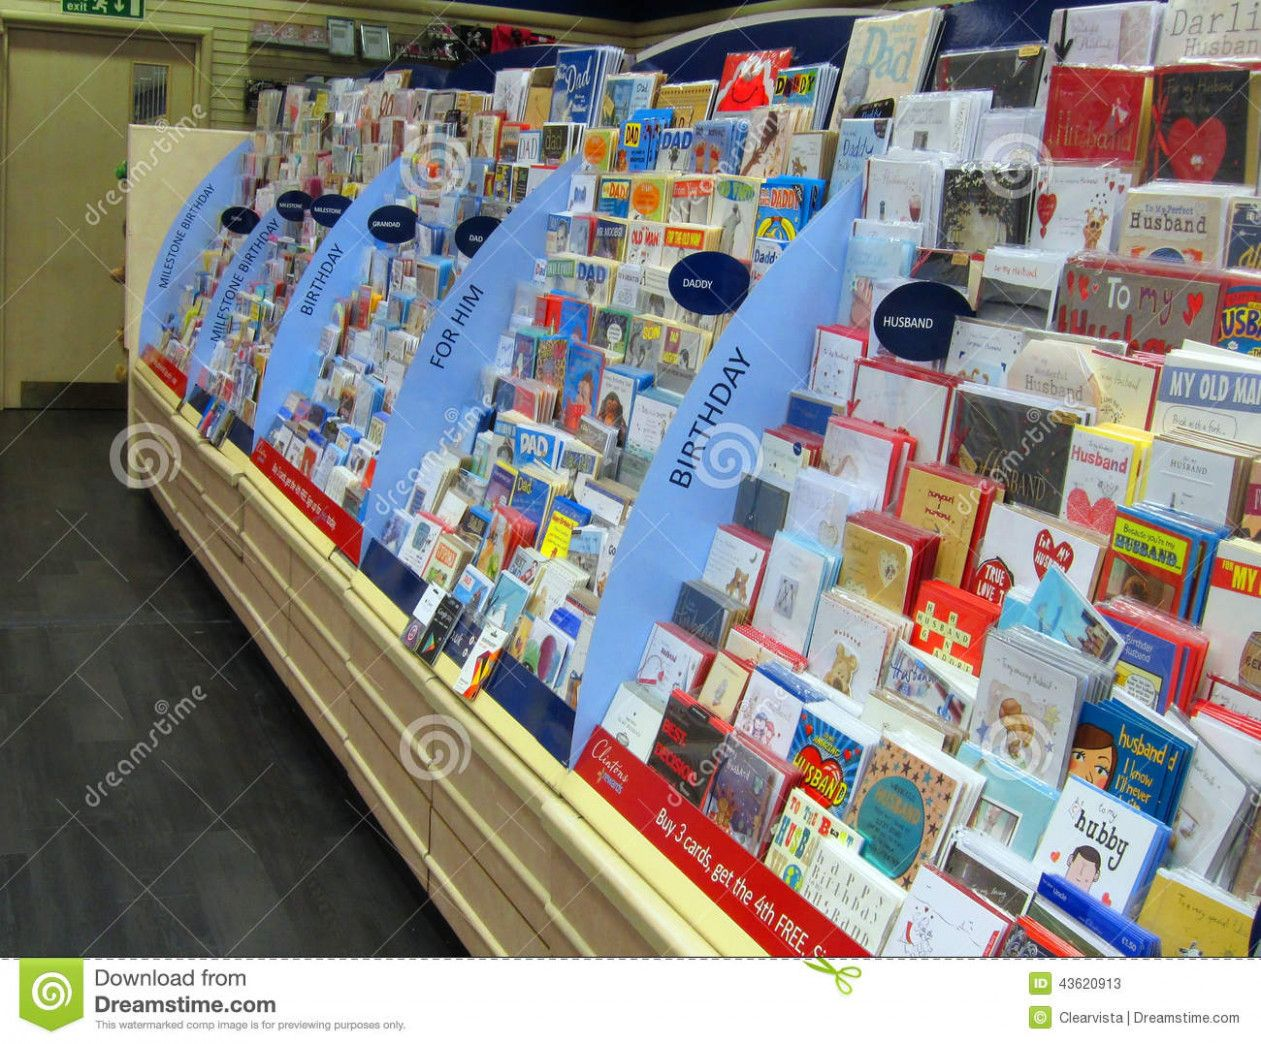 10 Top Birthday Card Store In 2021 Cool Birthday Cards Cheap Birthday Cards Greeting Card Shops